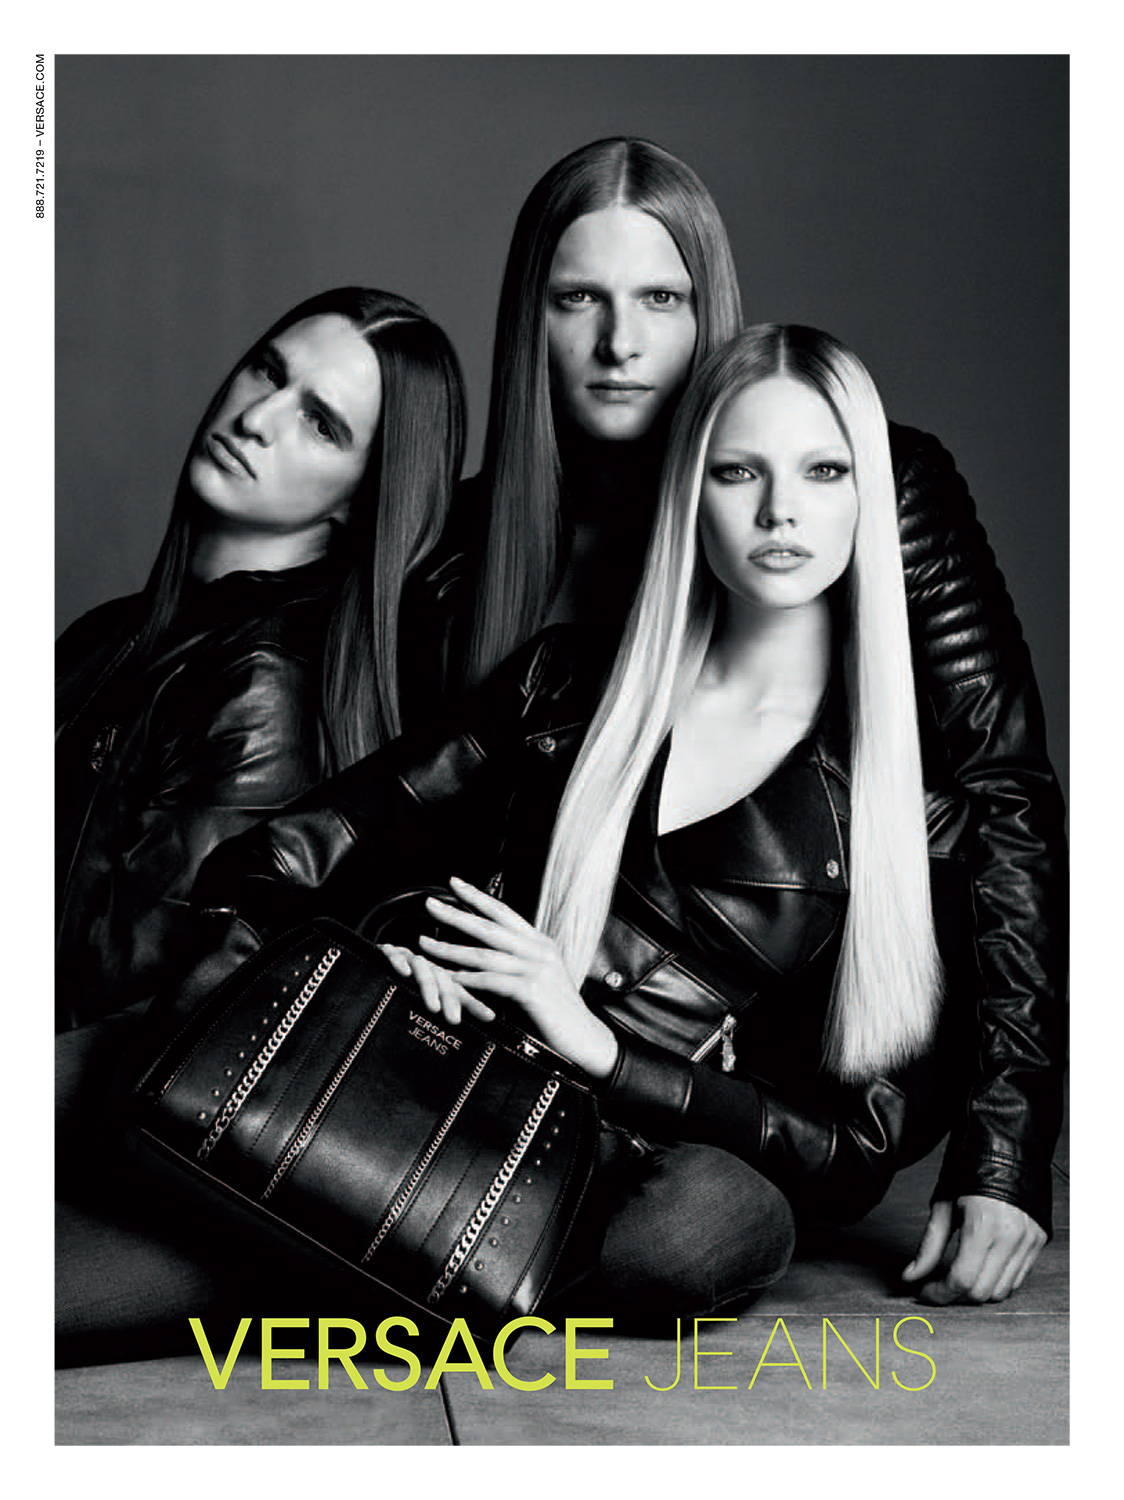 Versace-Jeans-Fall-Winter-2014-Campaign-001